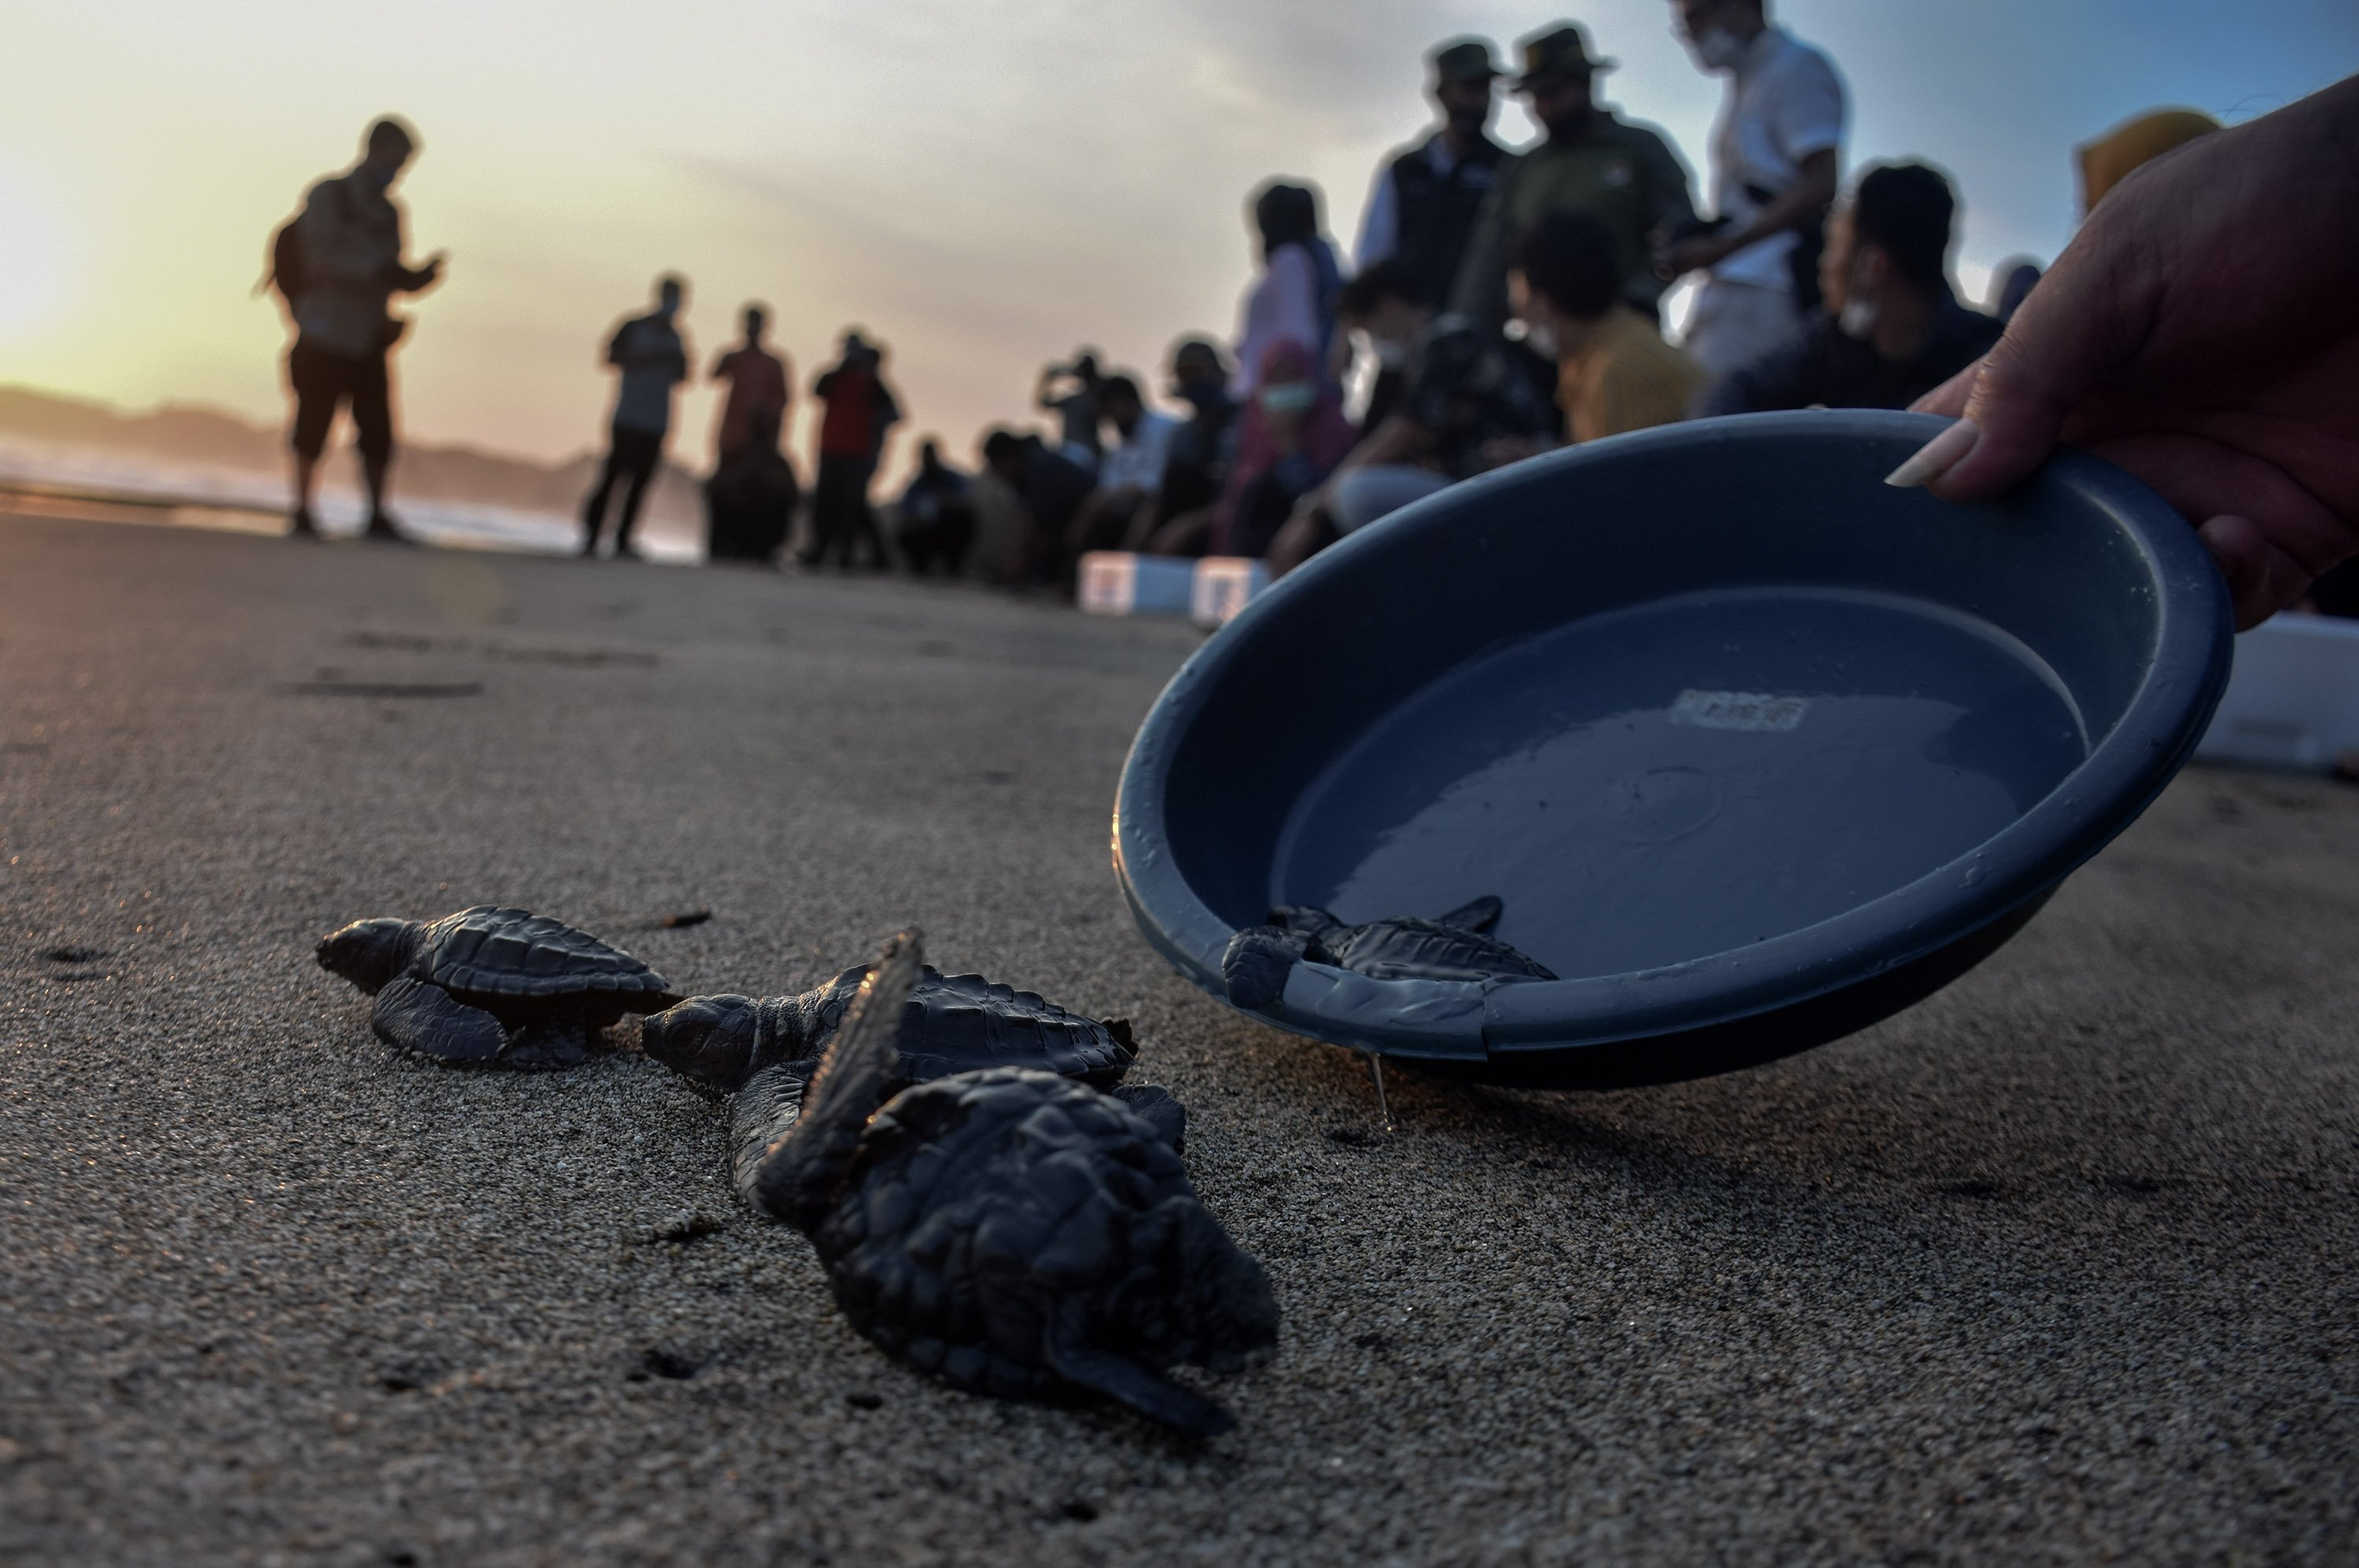 Several 3-week-old baby turtles (Chelonia mydas) run to the high seas after being released on Bajul Mati Beach, Malang, East Java, Indonesia, on Sep. 10, 2020. (Getty Images)